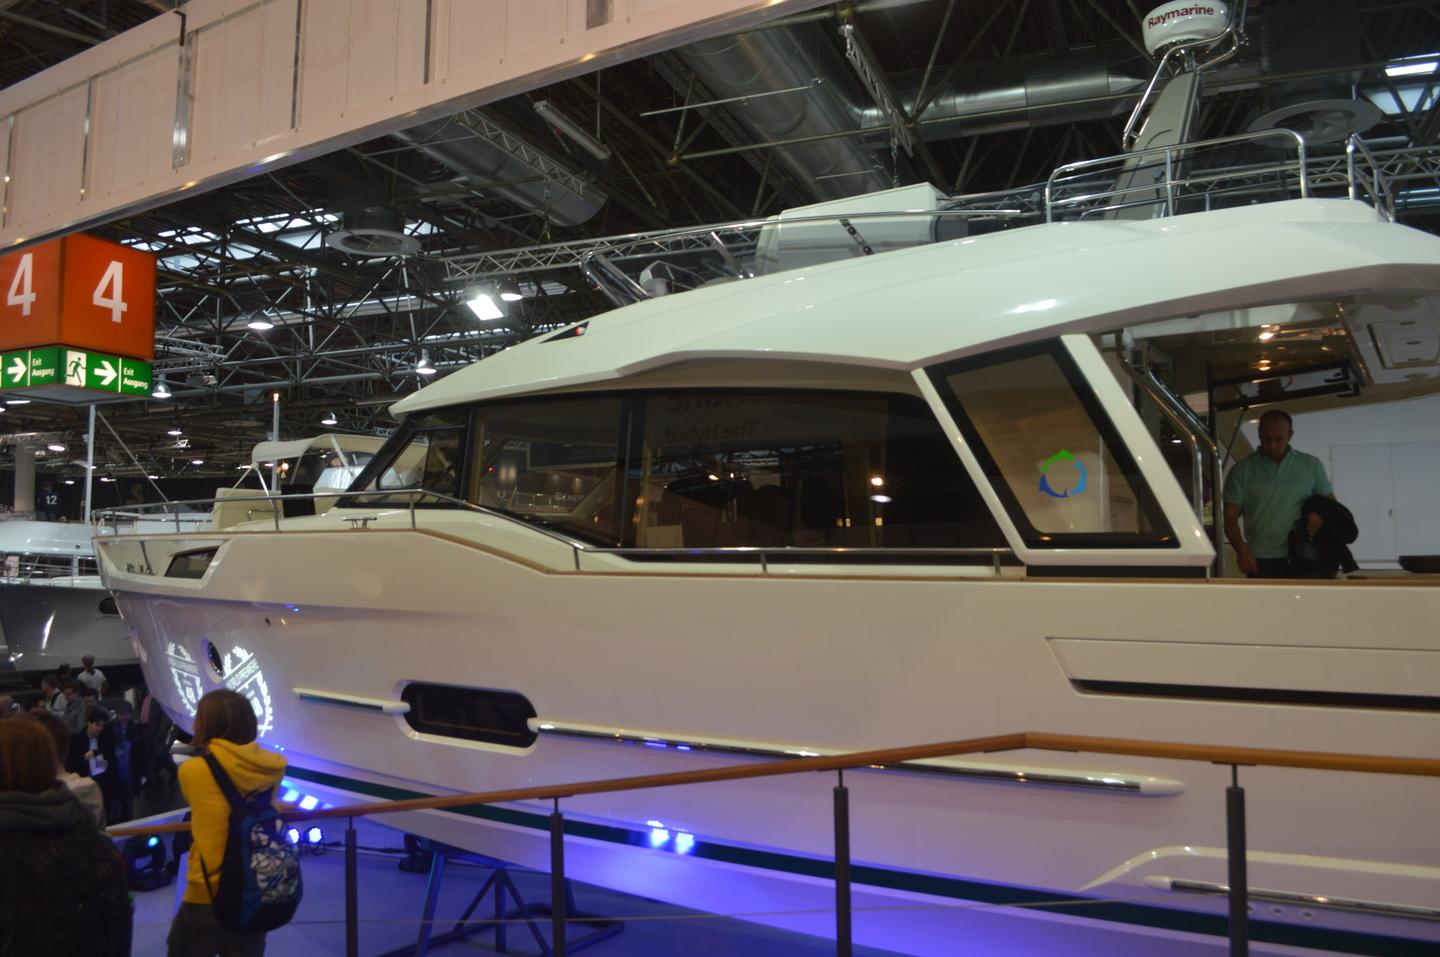 The Greenline 48 made its début at the Dusseldorf Boat Show